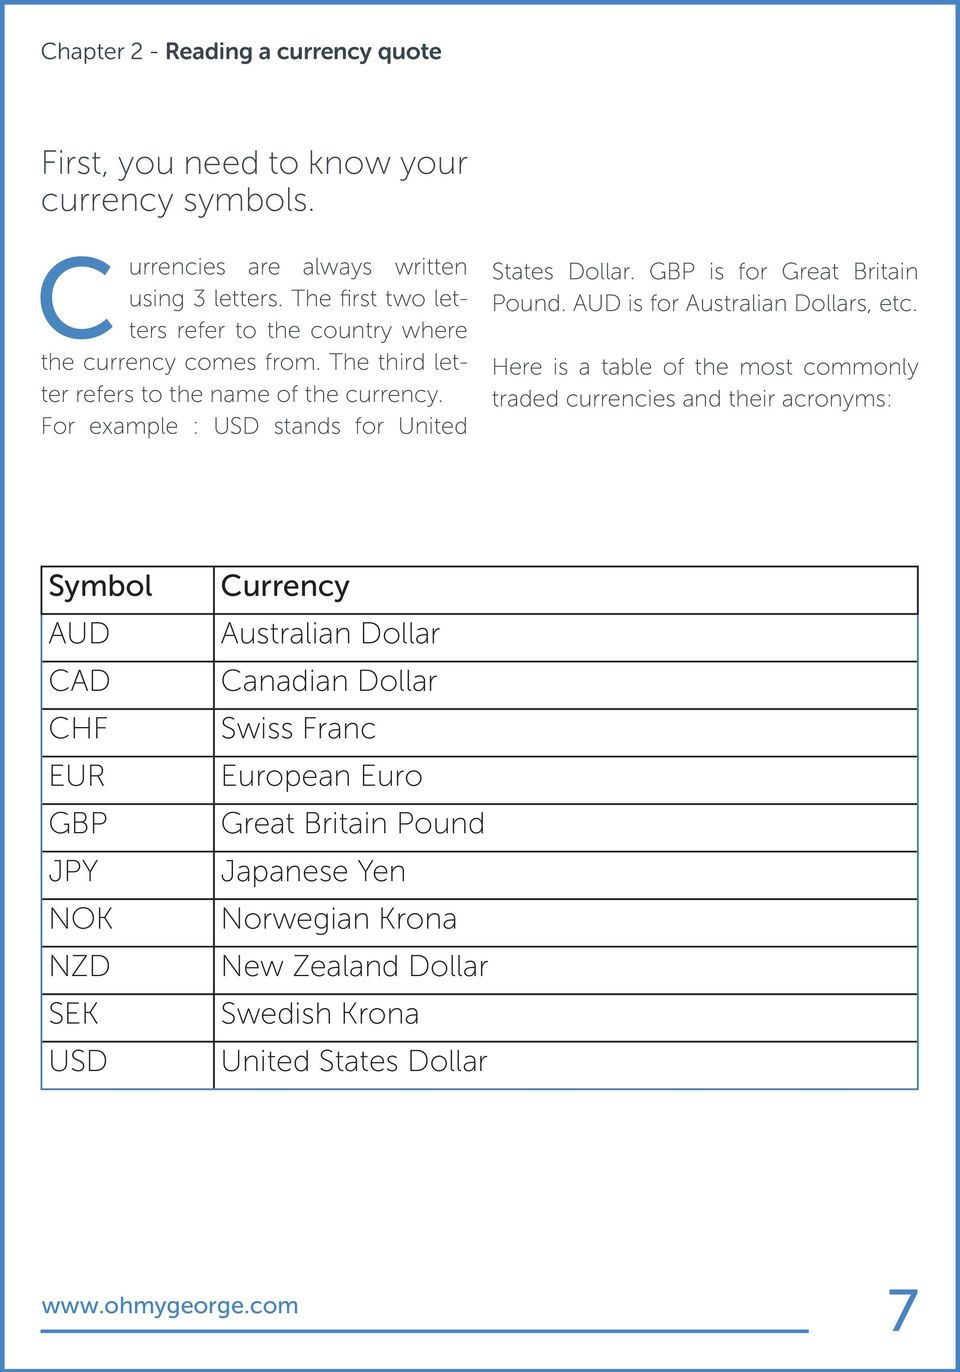 For example : USD stands for United States Dollar. GBP is for Great Britain Pound. AUD is for Australian Dollars, etc.